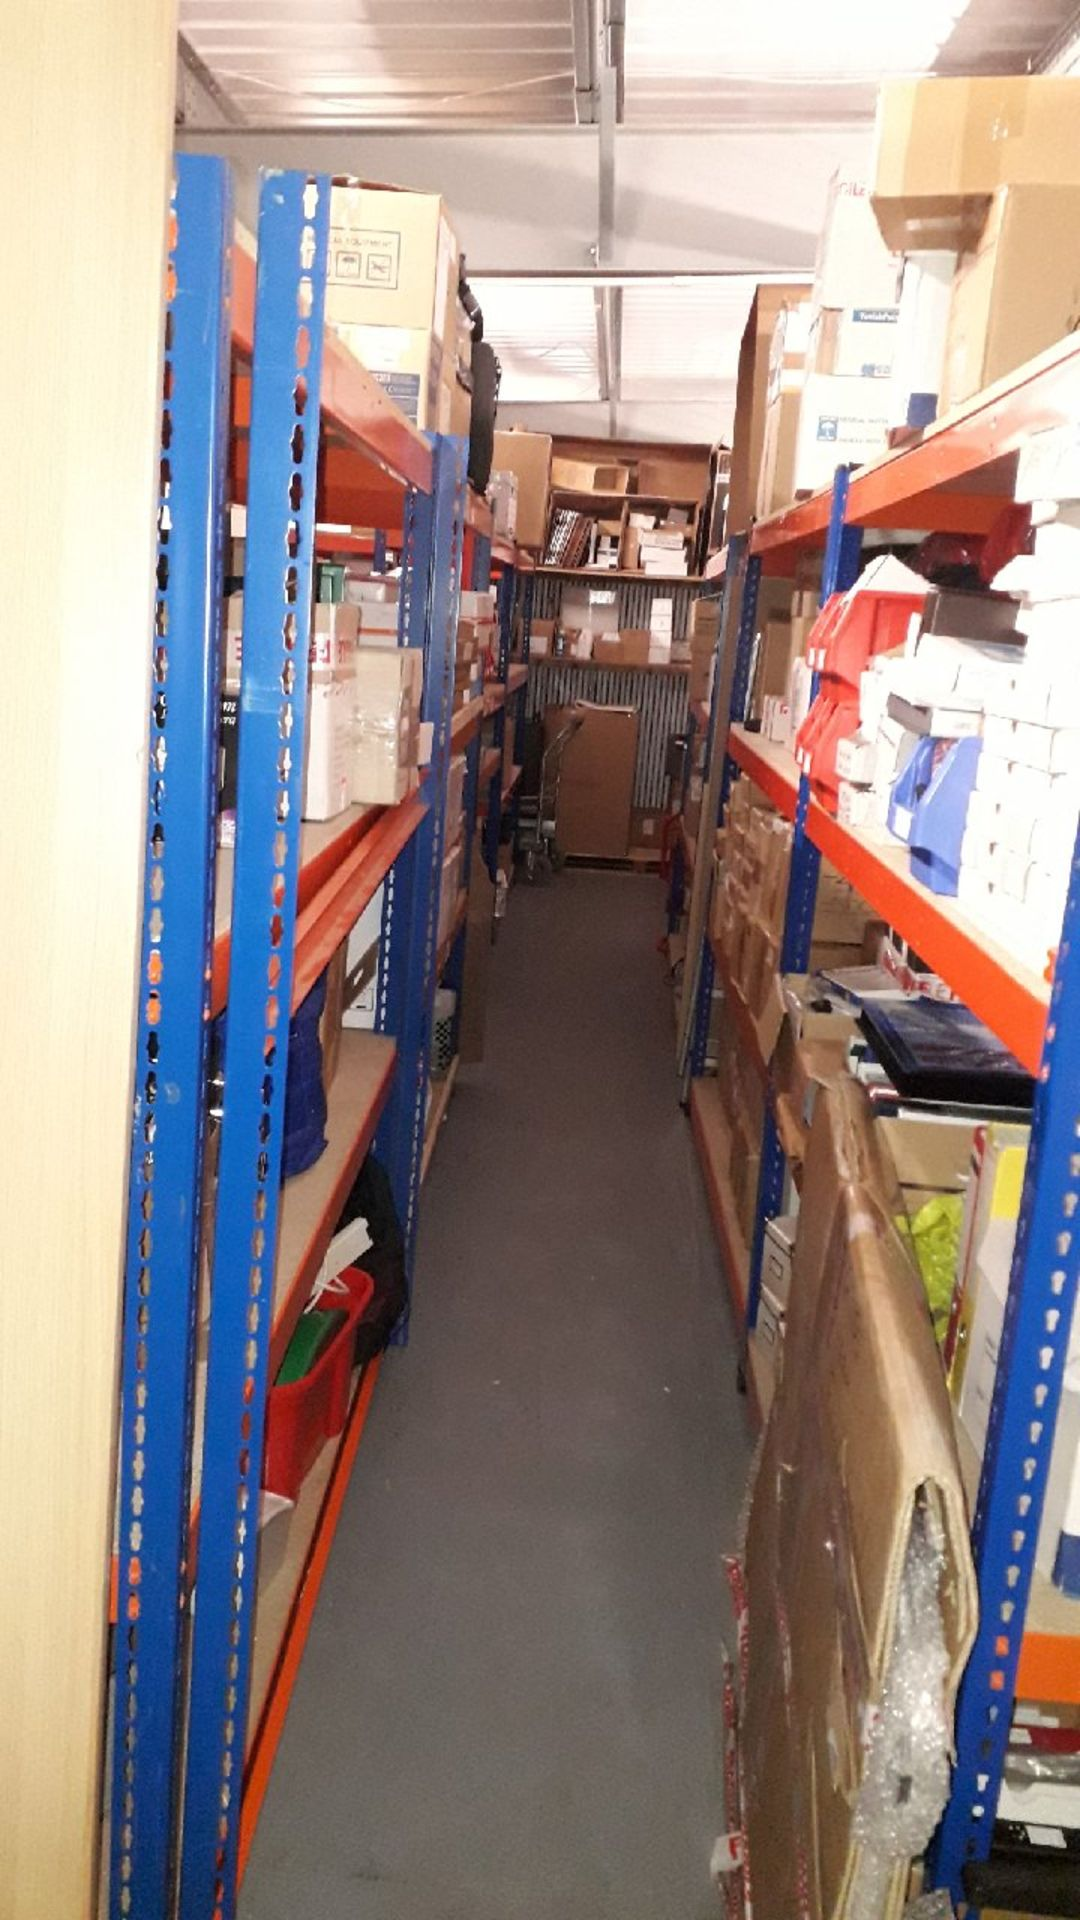 Stock of medical consumables and equipment to incl - Image 22 of 23